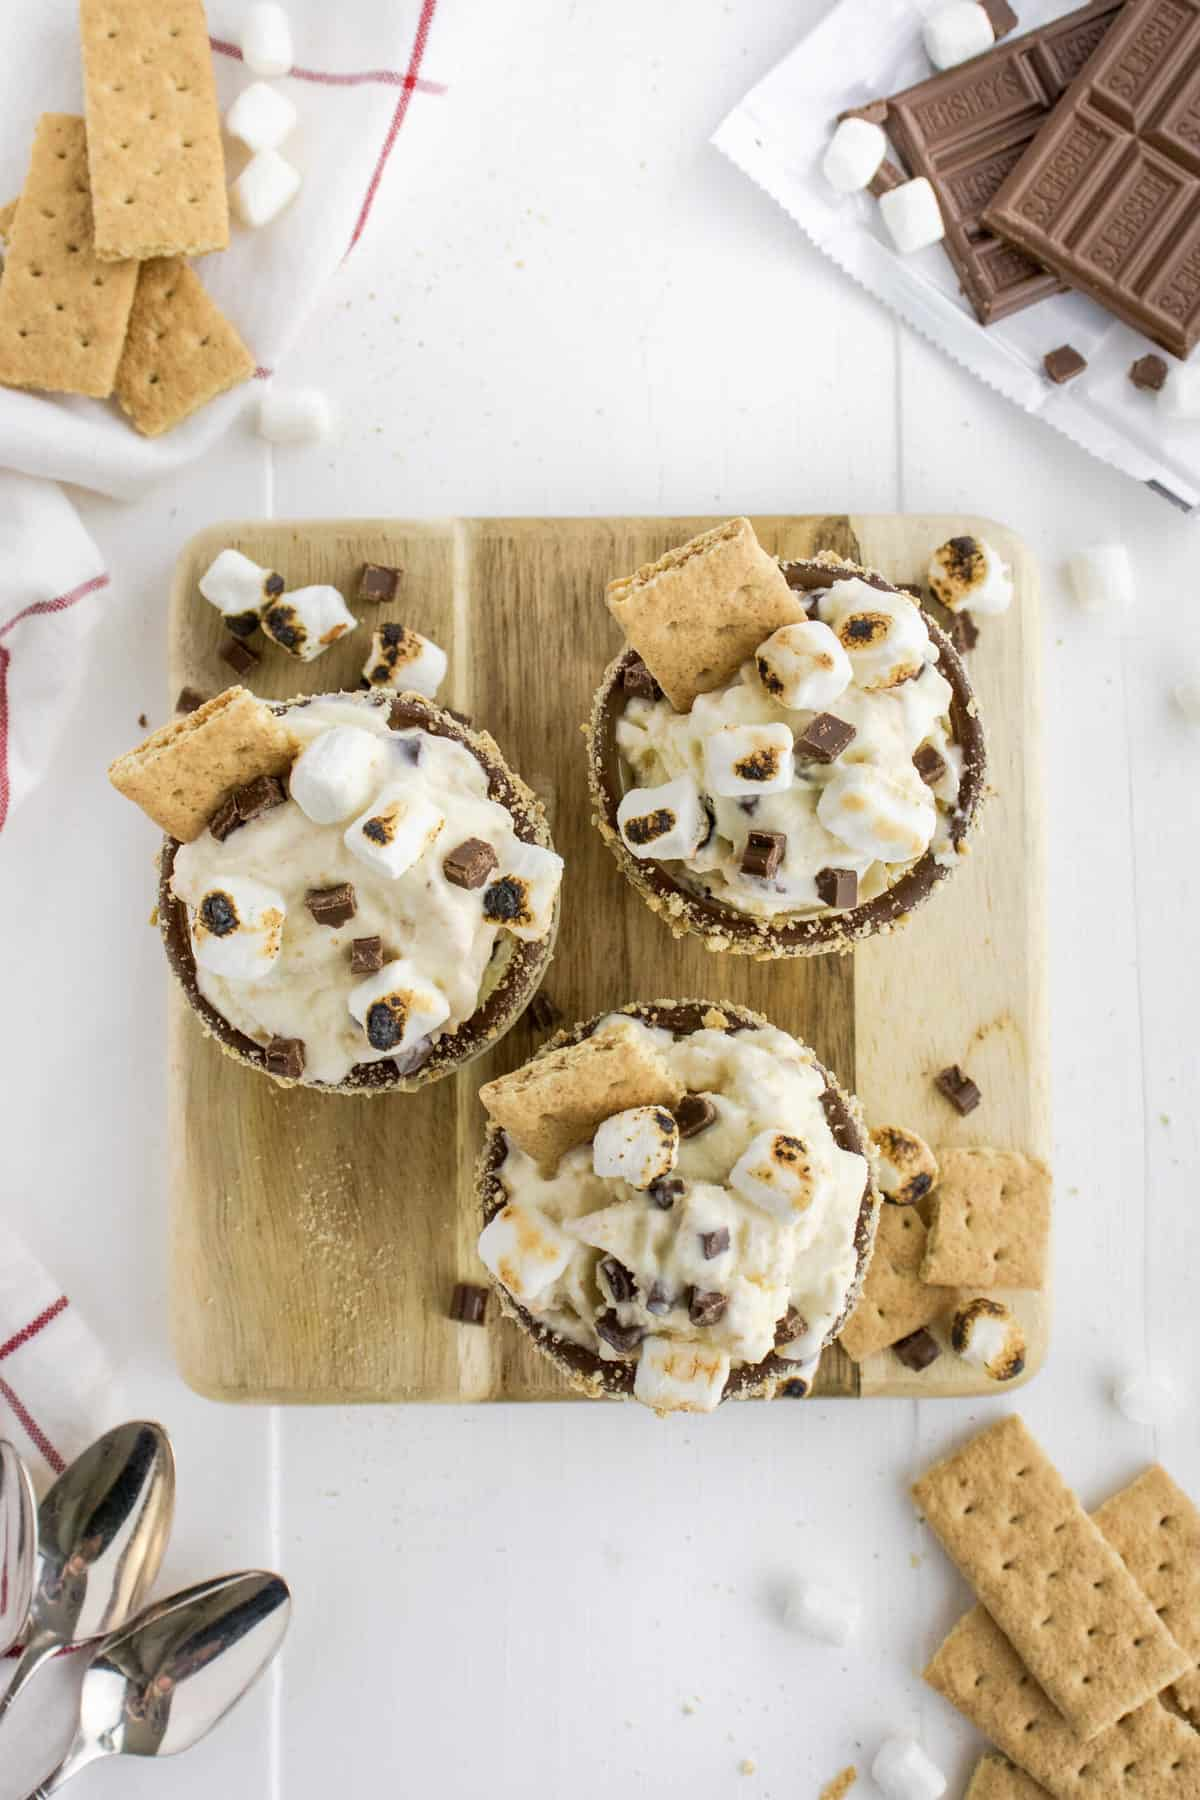 Homemade S'mores Blizzard by The BakerMama